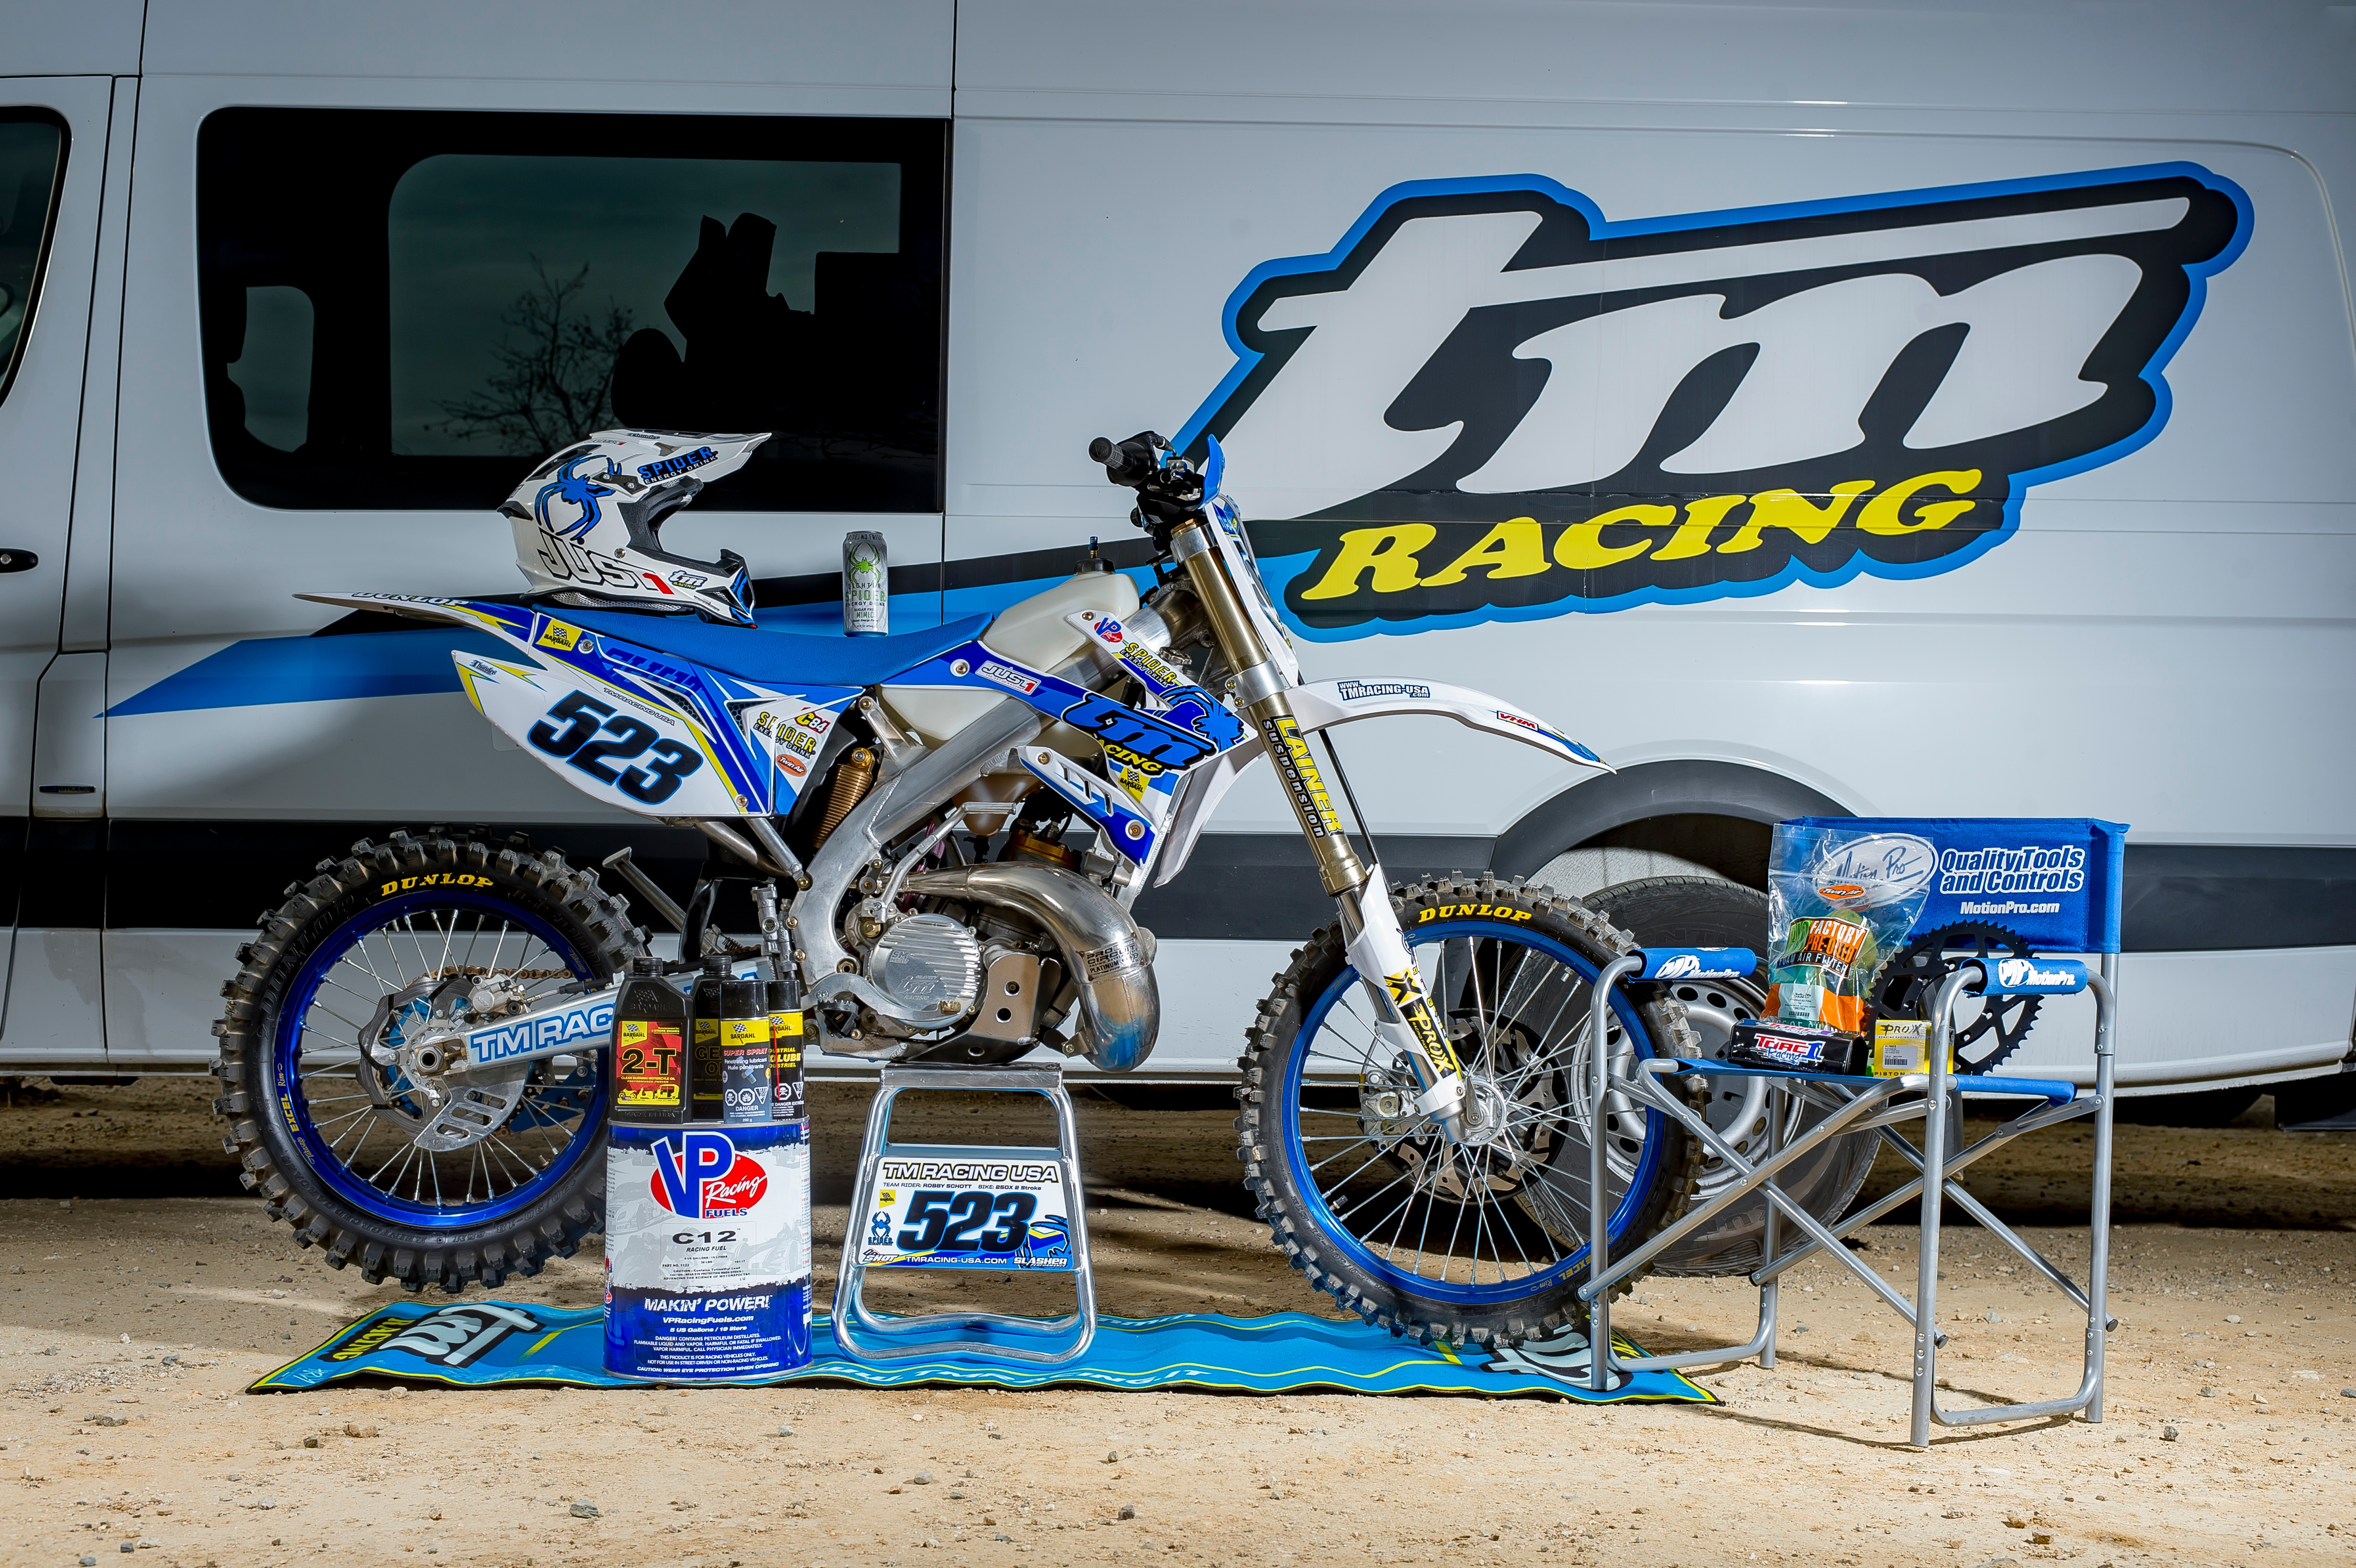 TM Racing: The Premium Motorcycle Brand You Should Know About